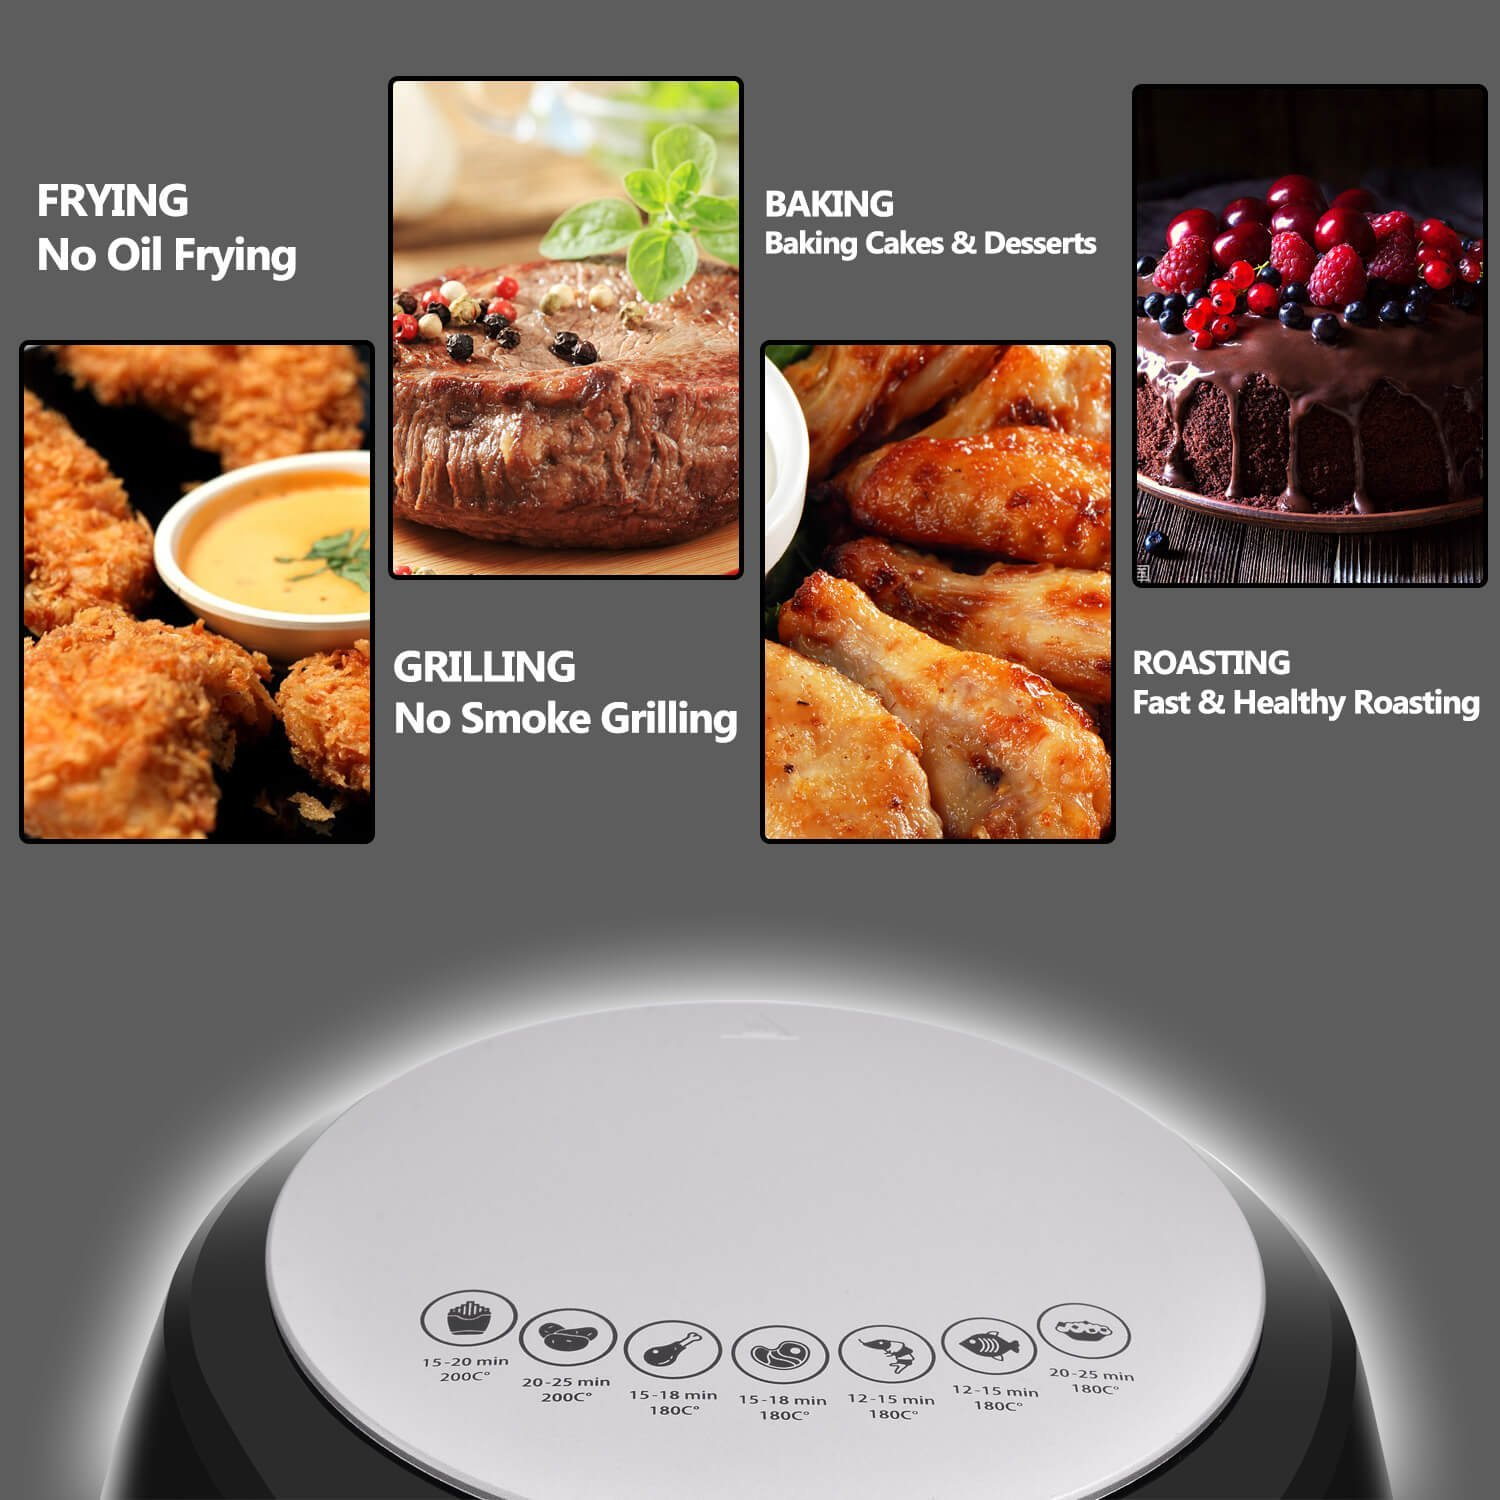 Amazon.com: Kintech Depp Air Fryer 3.2 QT, Electric Hot Air Fryer with Time & Temperature Control: Kitchen & Dining